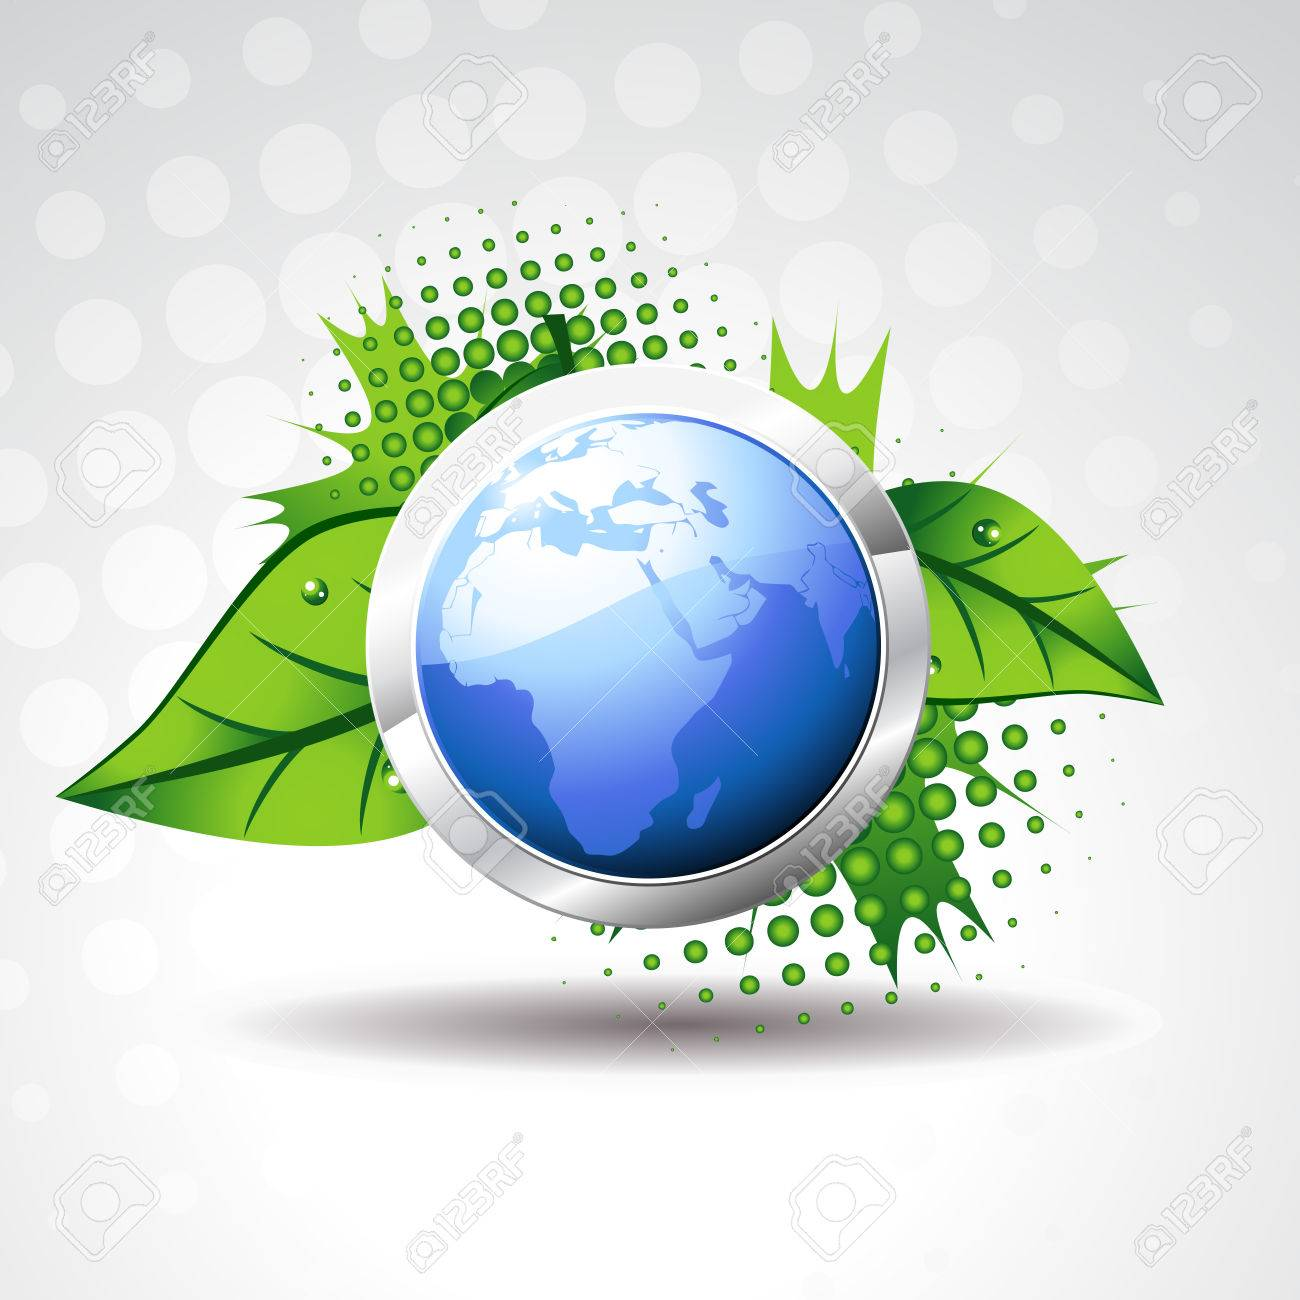 blue  earth with green leaves around it Stock Vector - 7476286